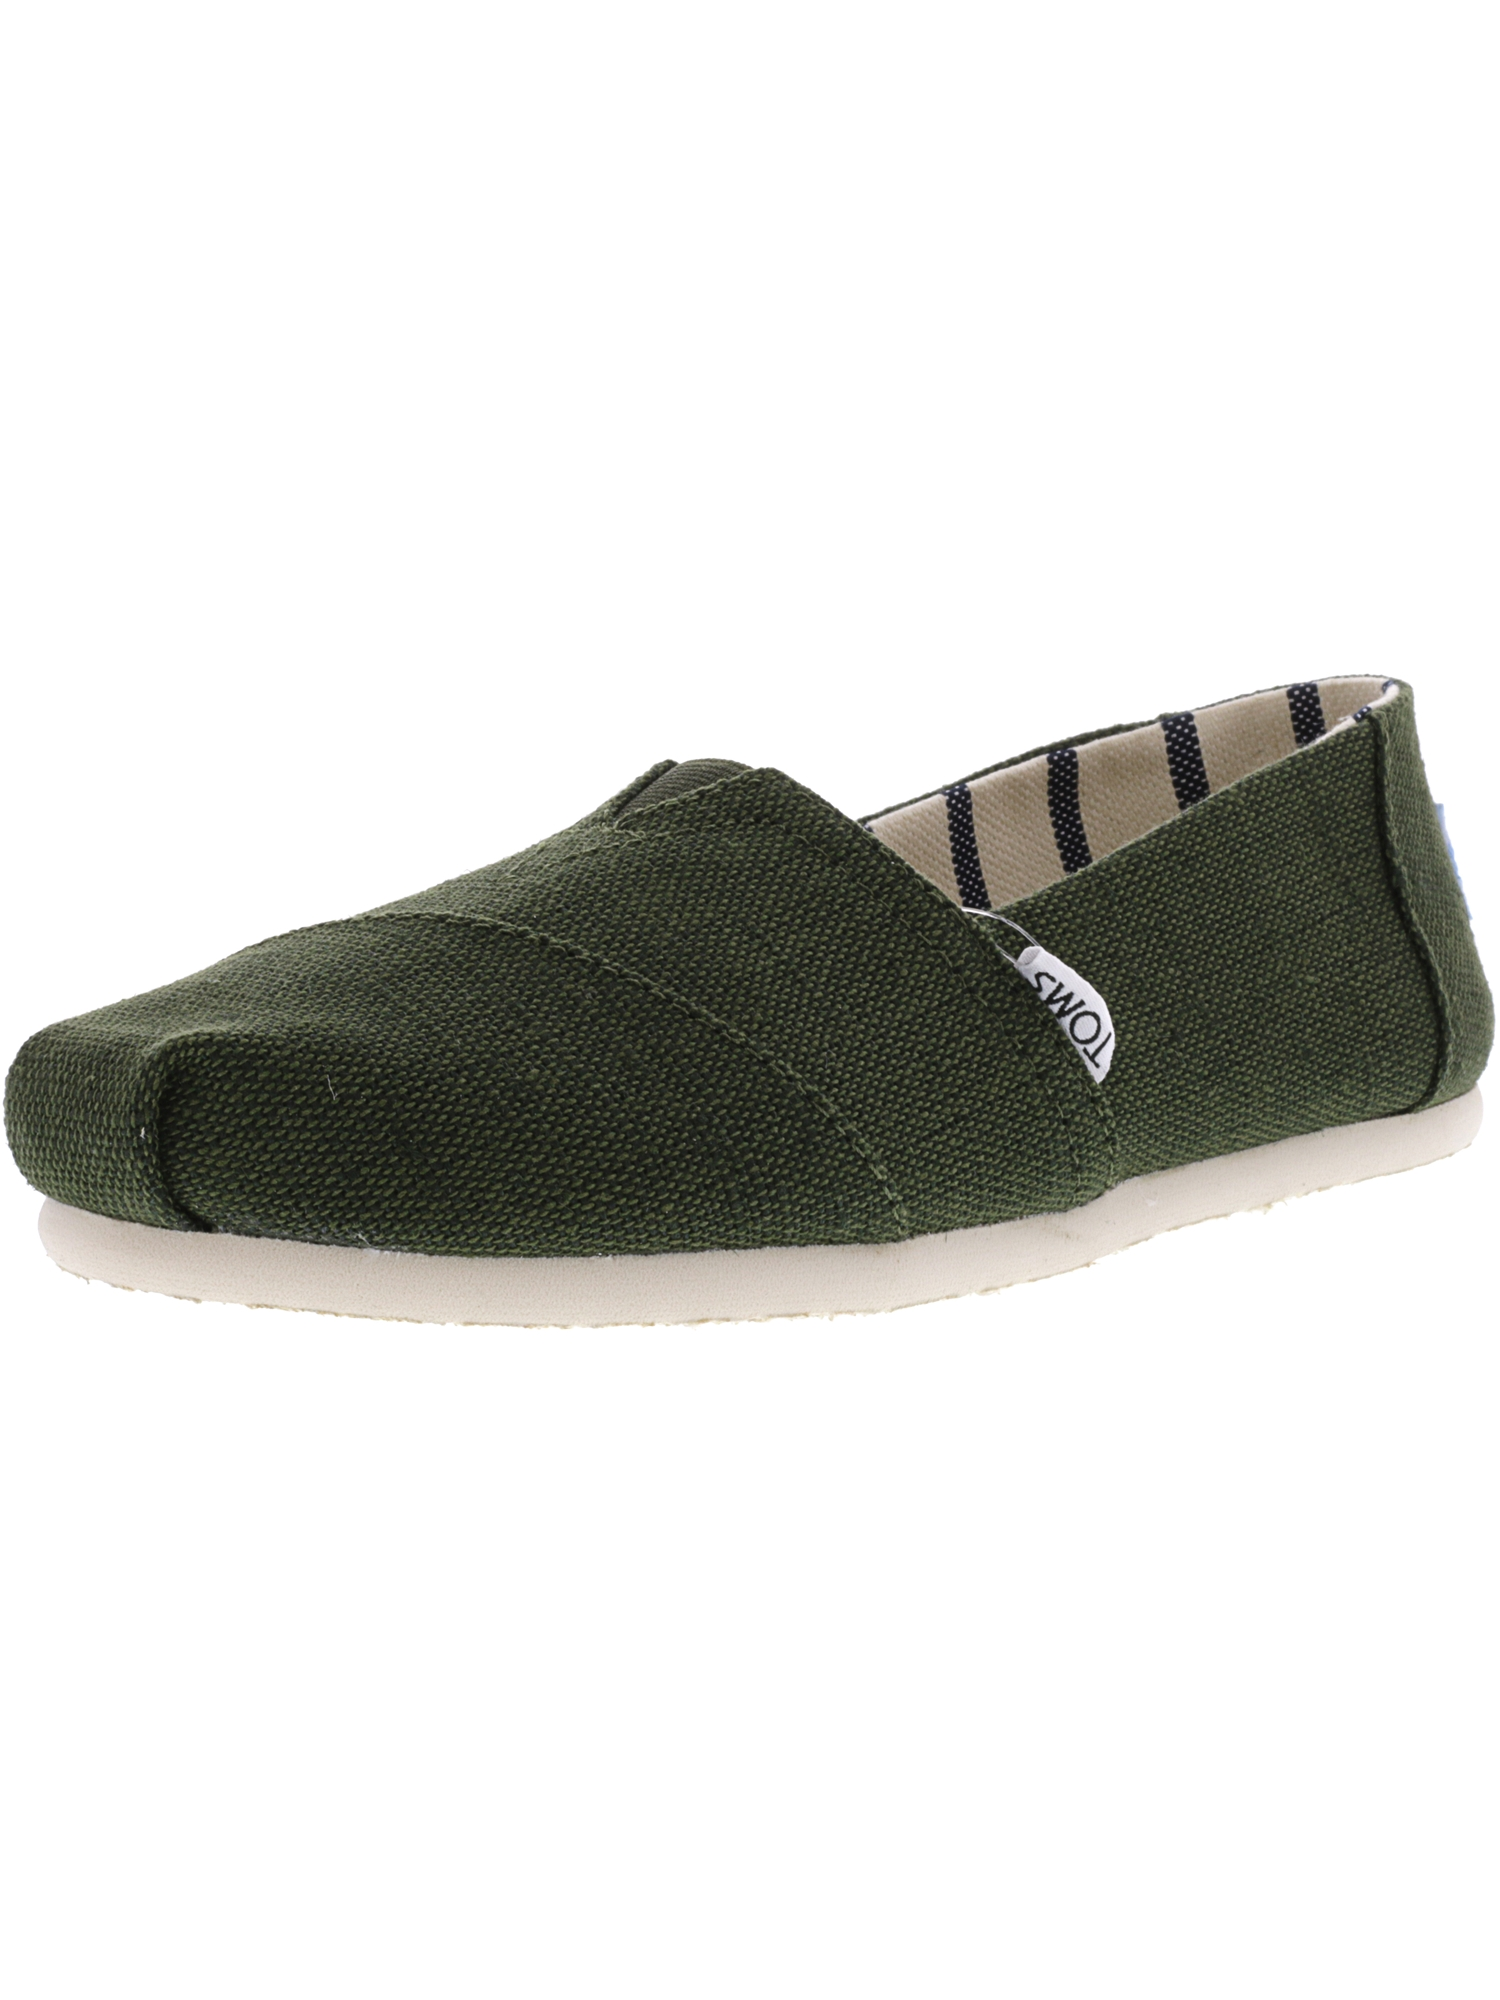 aa852859d2c Toms - Toms Women s Classic Heritage Canvas Majolica Blue Ankle-High  Slip-On Shoes - 7.5M - Walmart.com